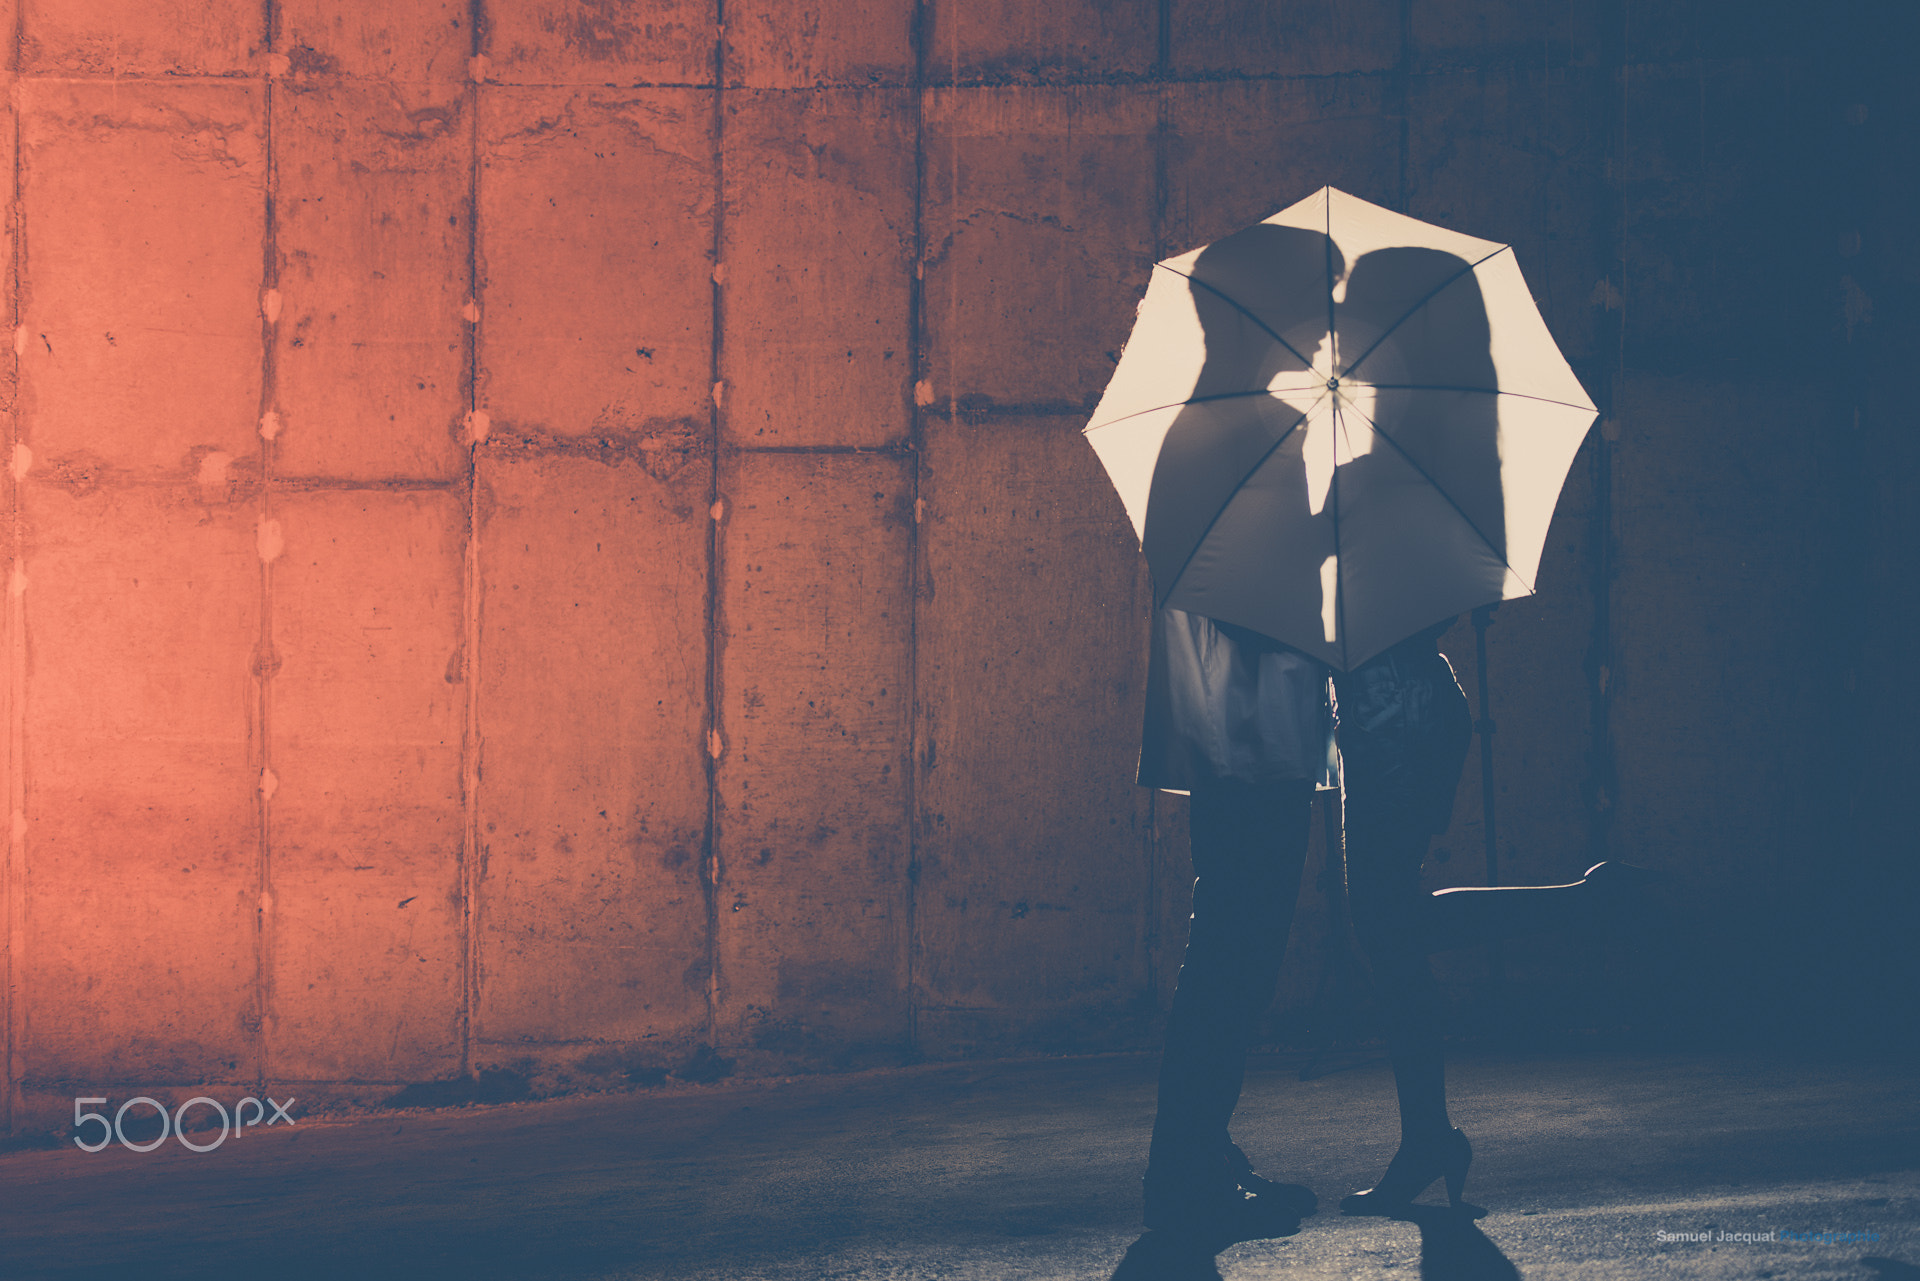 Photograph Love has to be protected by Samuel Jacquat on 500px